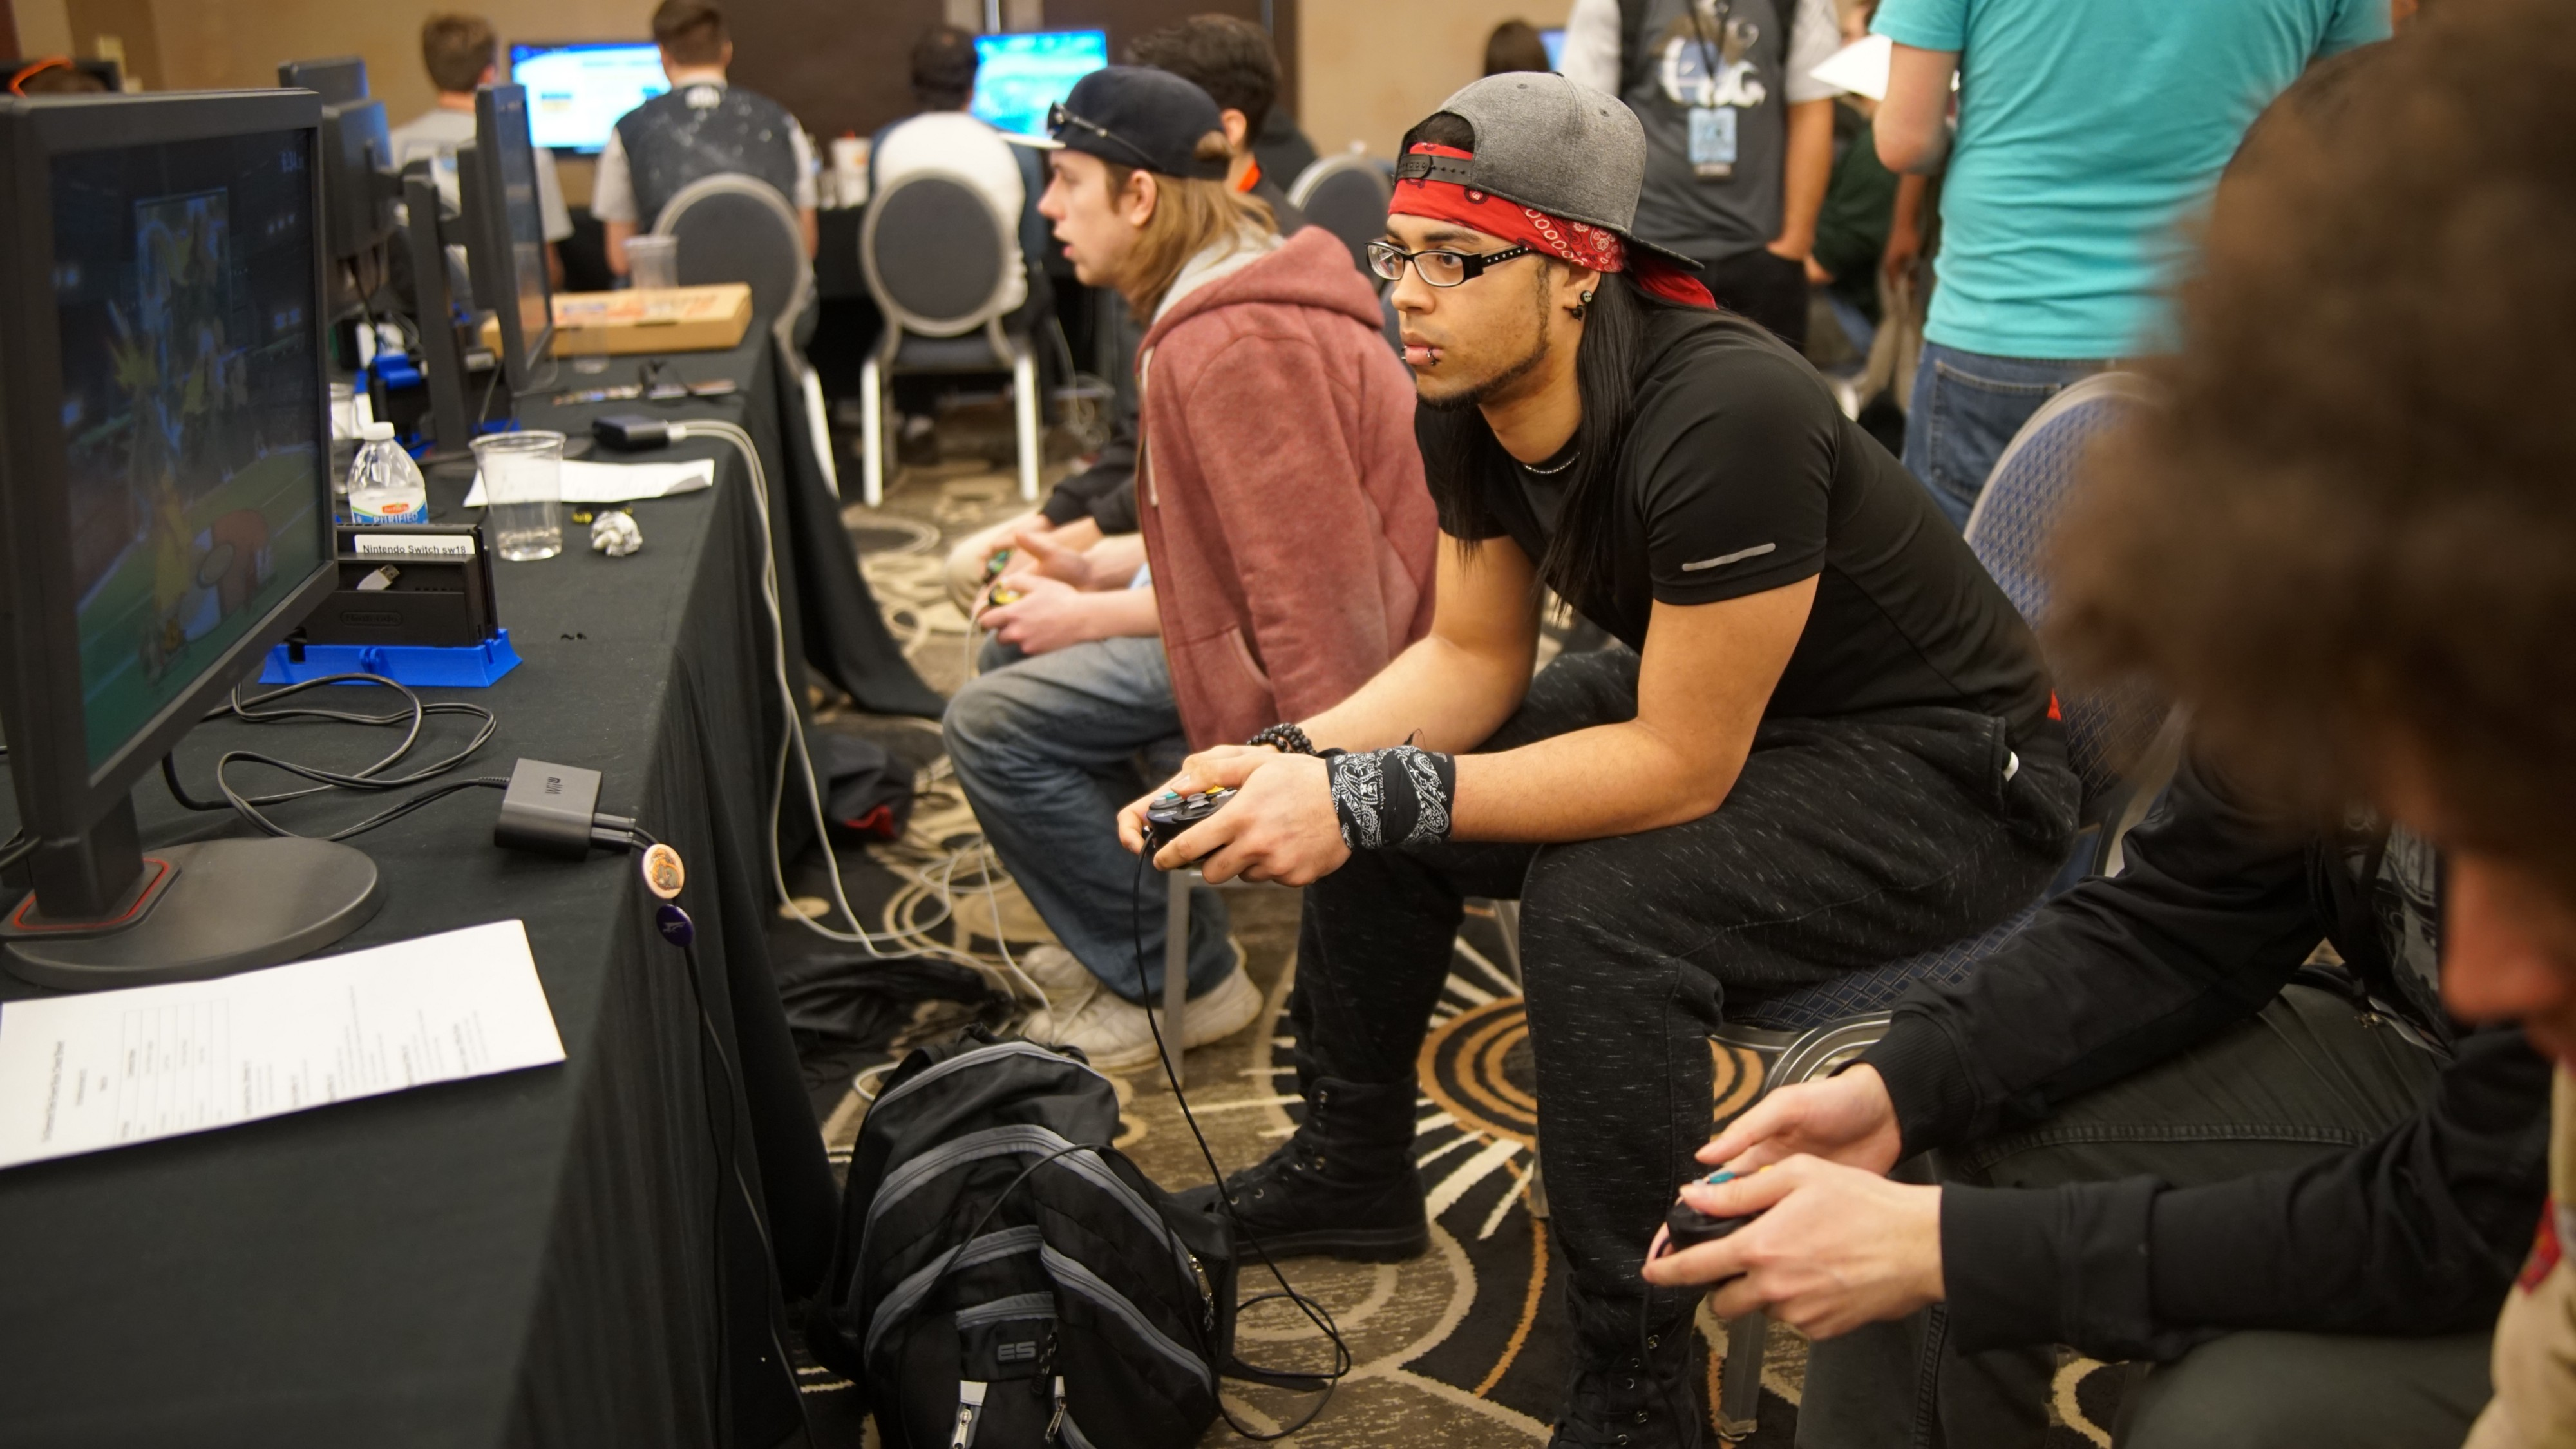 a group of young males sitting together, playing videogames at some sort of convention